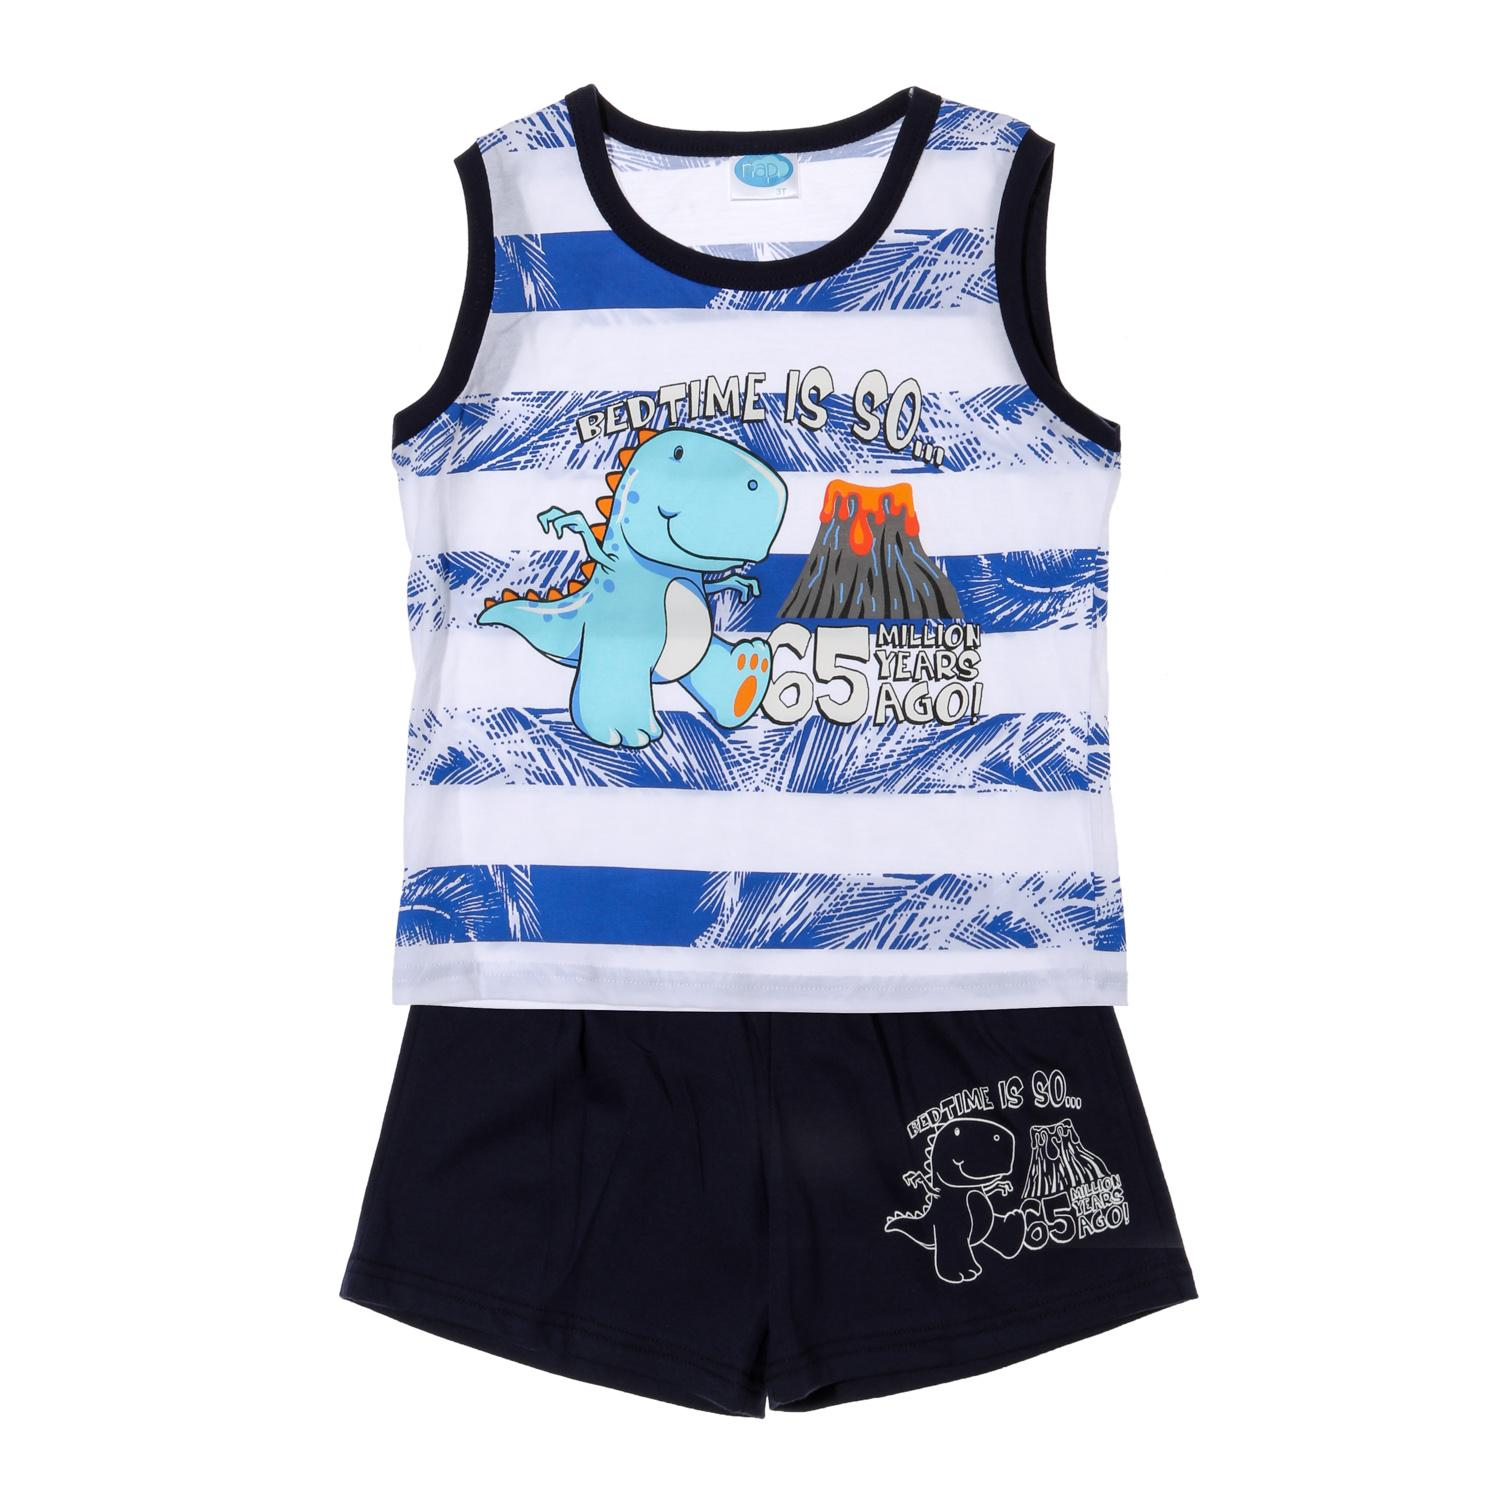 8bc6dfdd8b62 Clothing Set for Baby Boys for sale - Baby Boys Clothing Set Online ...